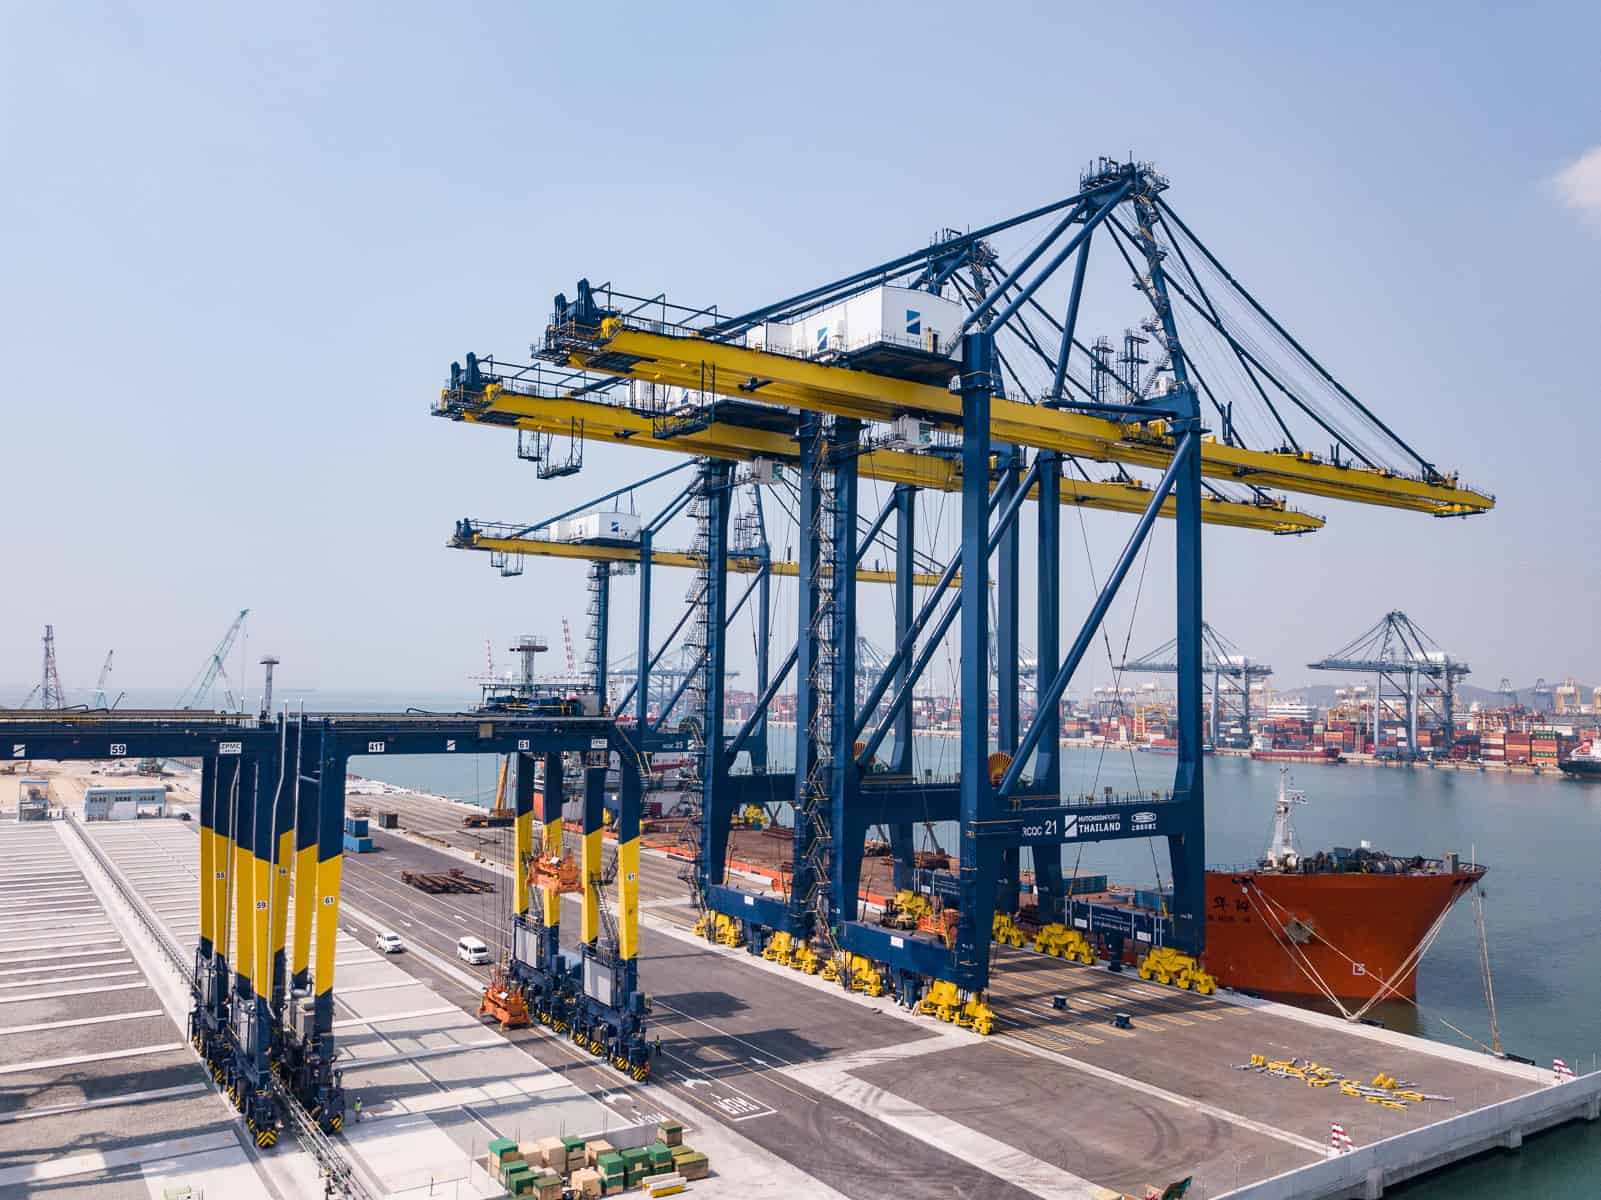 Remote-controlled cranes arrive in Laem Chabang